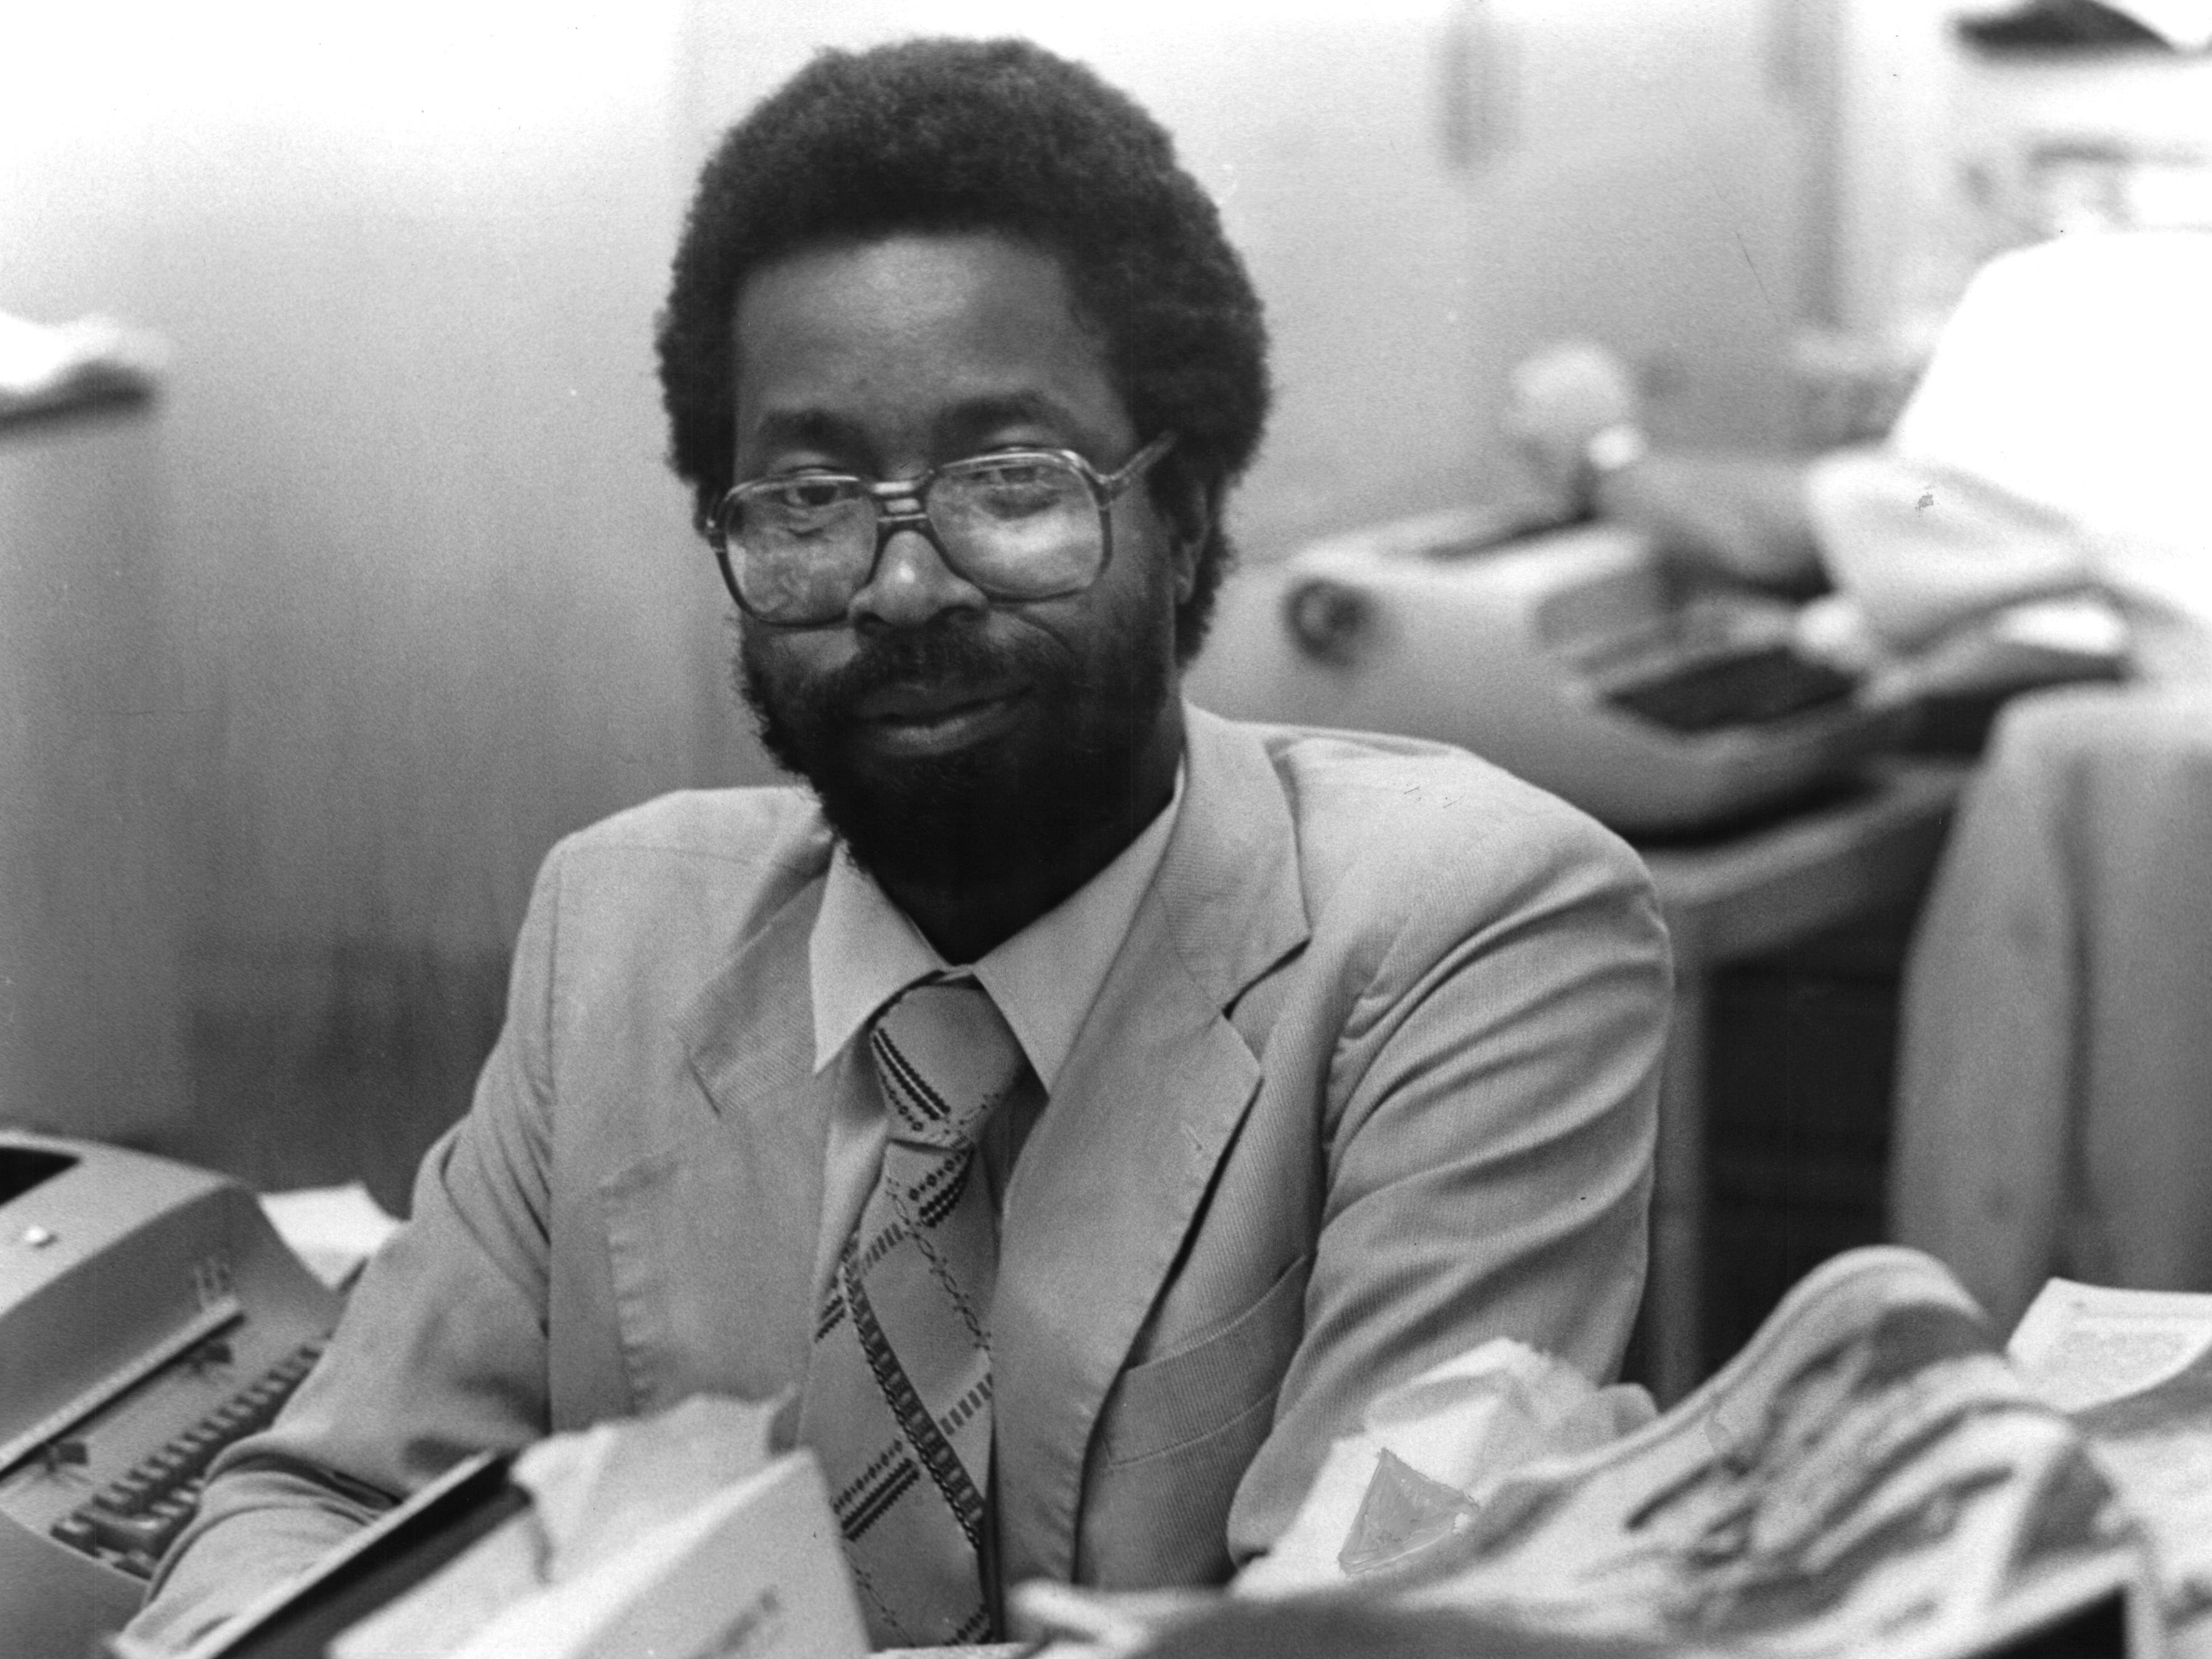 1981: Milwaukee Journal reporter Greg Stanford at his desk.